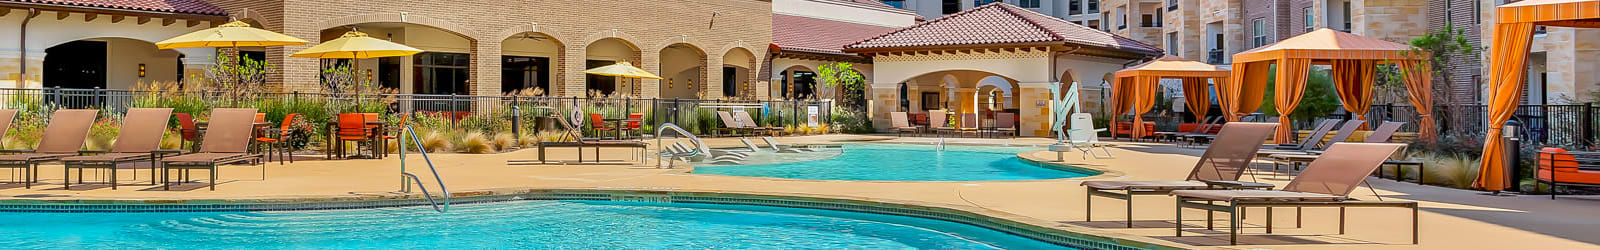 Contact us at Villas at the Rim in San Antonio, Texas